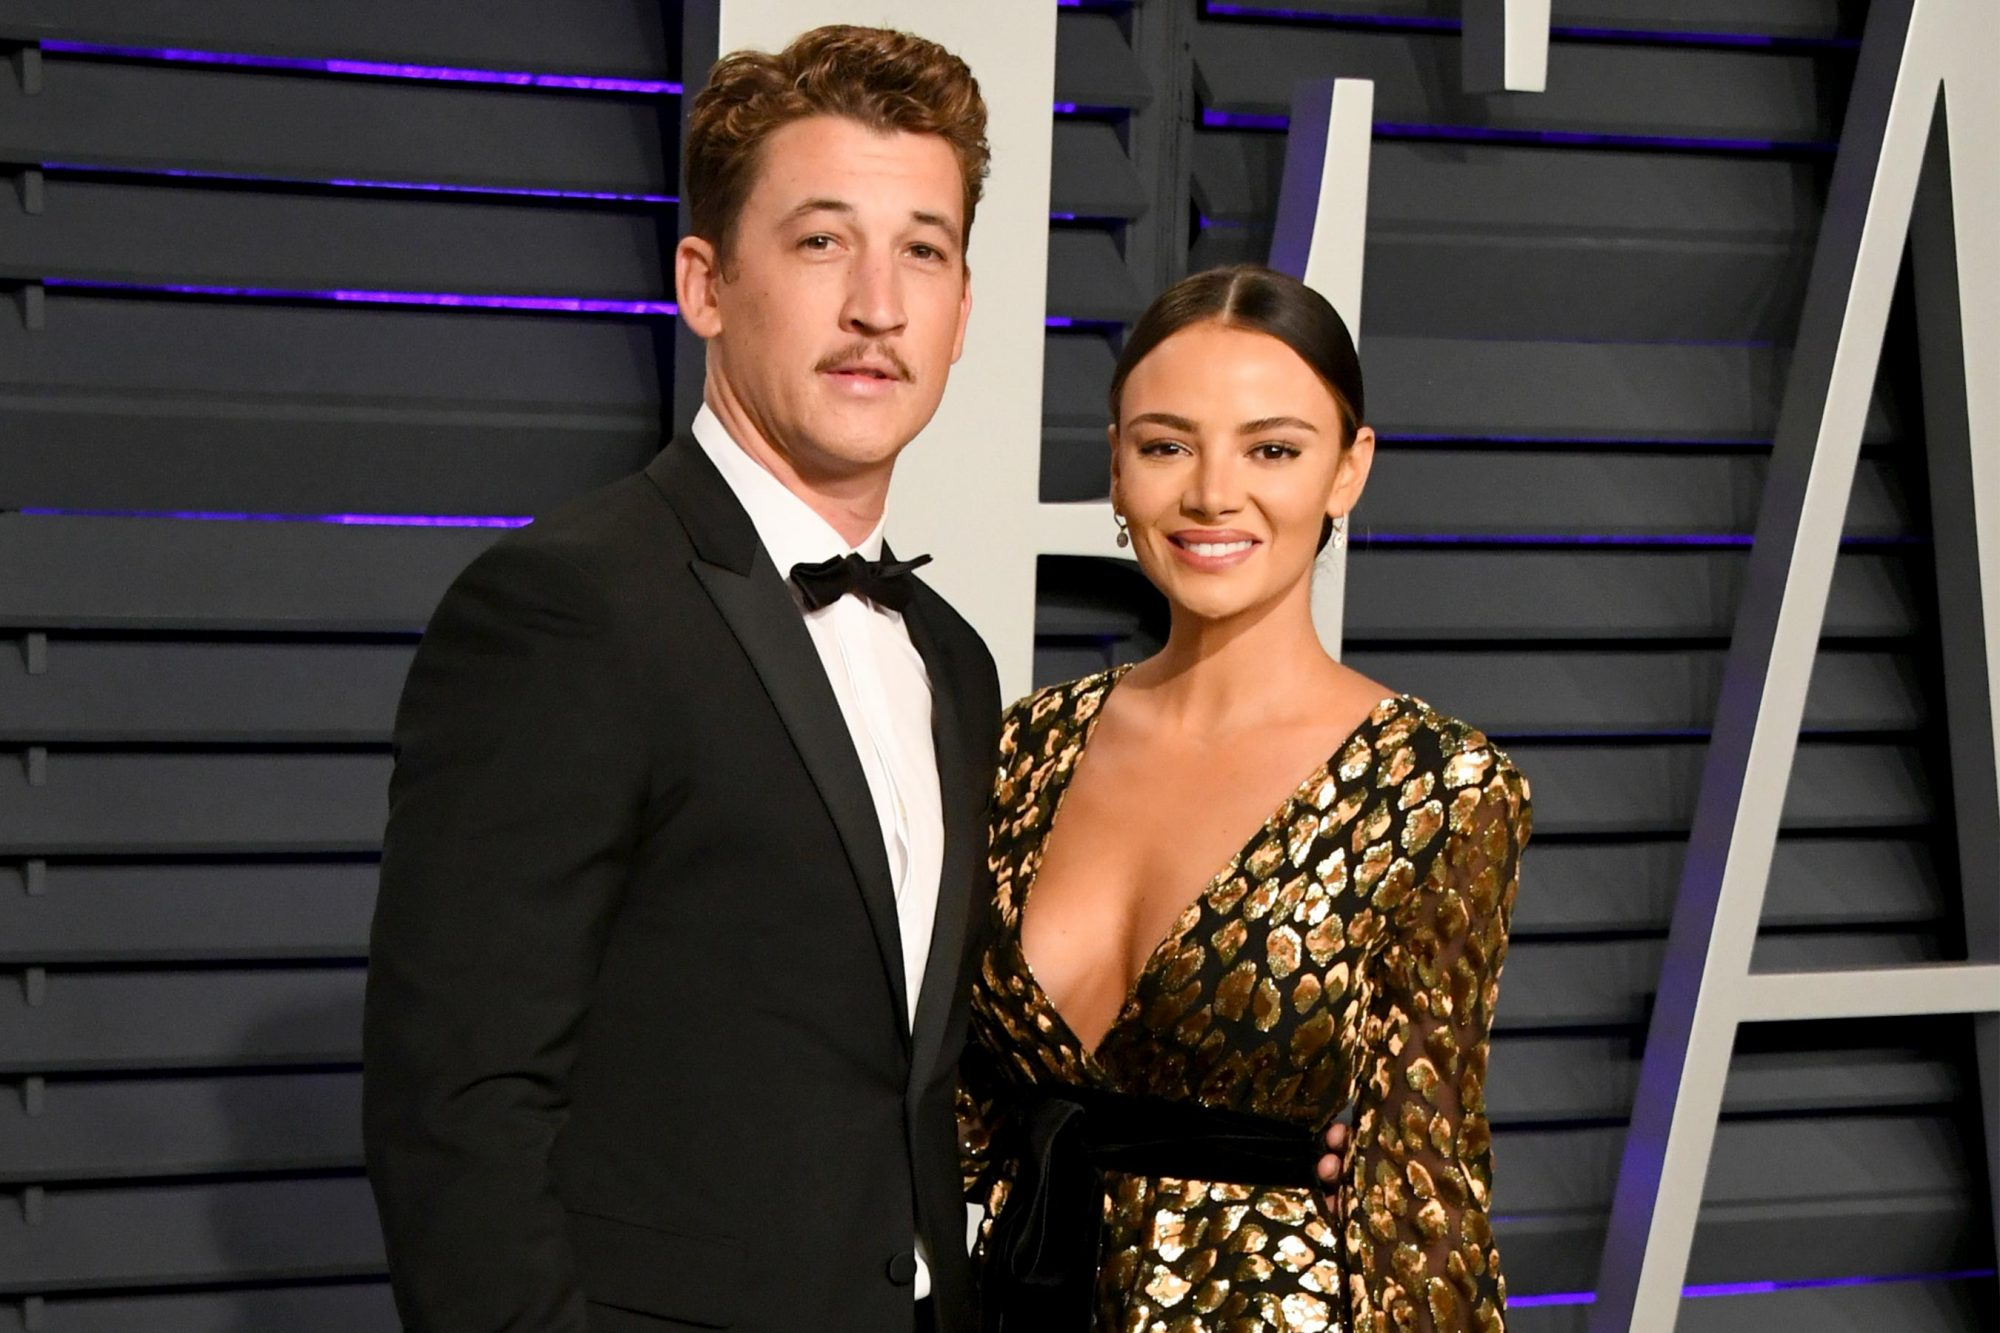 BEVERLY HILLS, CA - FEBRUARY 24: (L-R) Miles Teller and Keleigh Sperry attend the 2019 Vanity Fair Oscar Party hosted by Radhika Jones at Wallis Annenberg Center for the Performing Arts on February 24, 2019 in Beverly Hills, California. (Photo by Jon Kopaloff/WireImage)